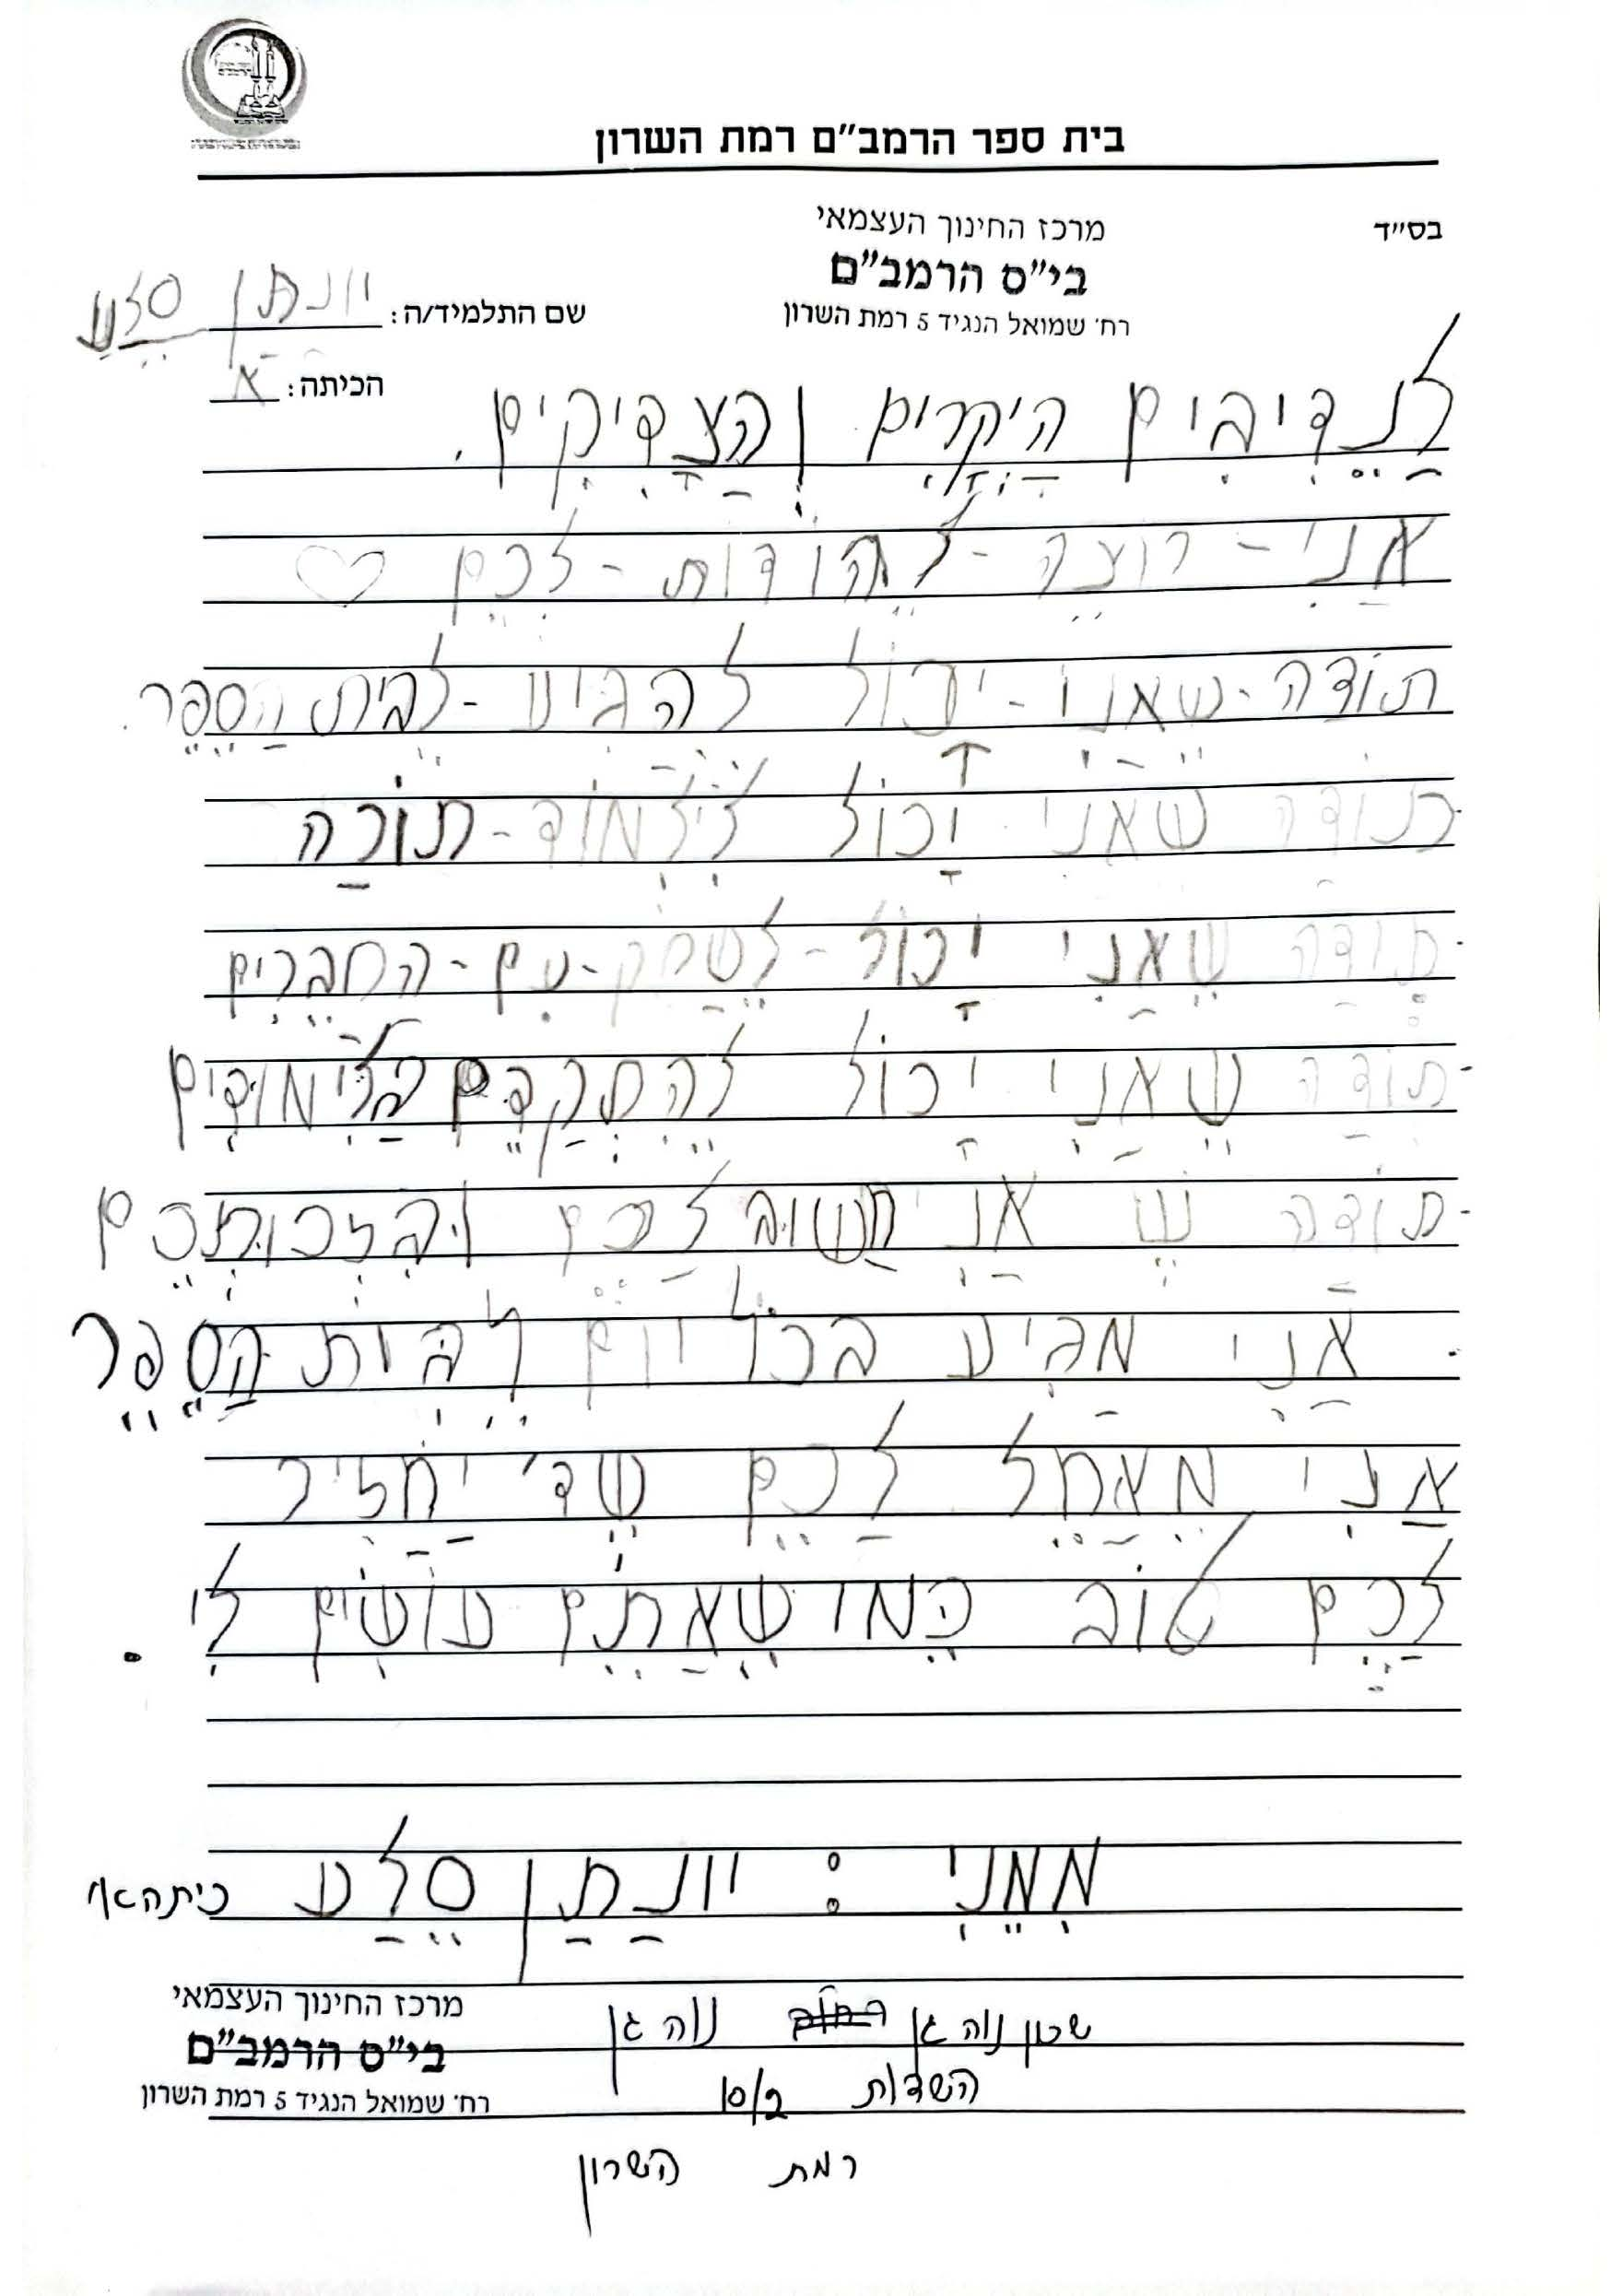 CamScanner 07-28-2021 09.08_Page_13